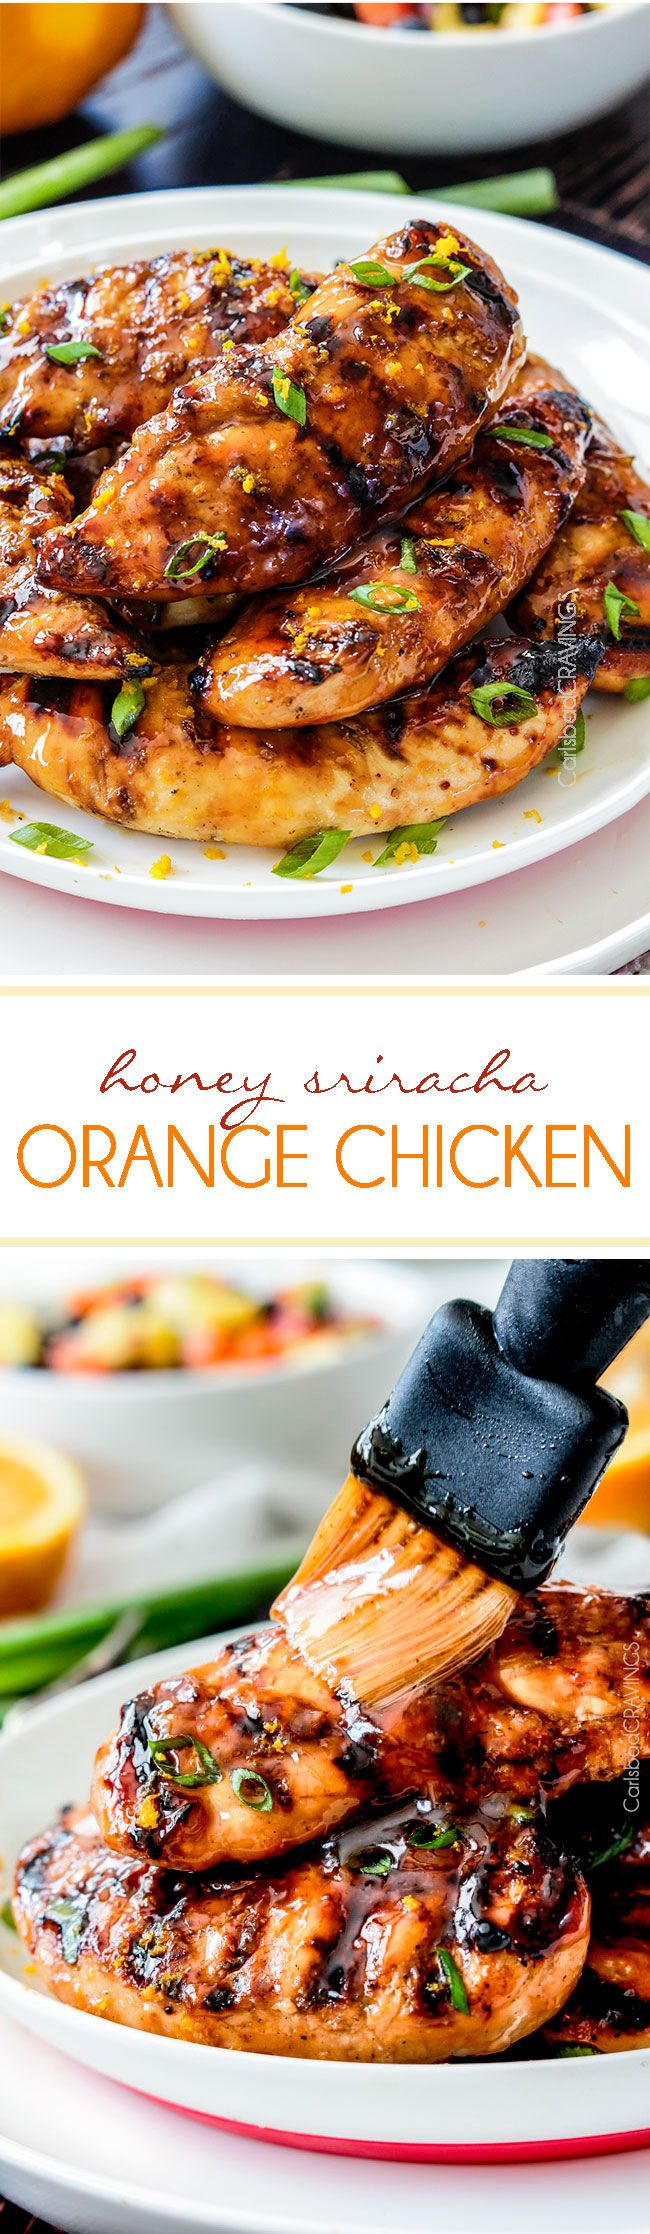 Tender, juicy Grilled honey Sriracha Orange Chicken marinated and smothered in the most tantalizing sweet heat orange sauce you can't even imagine! #orangechicken #sriracha #grilledchicken #honey #orange